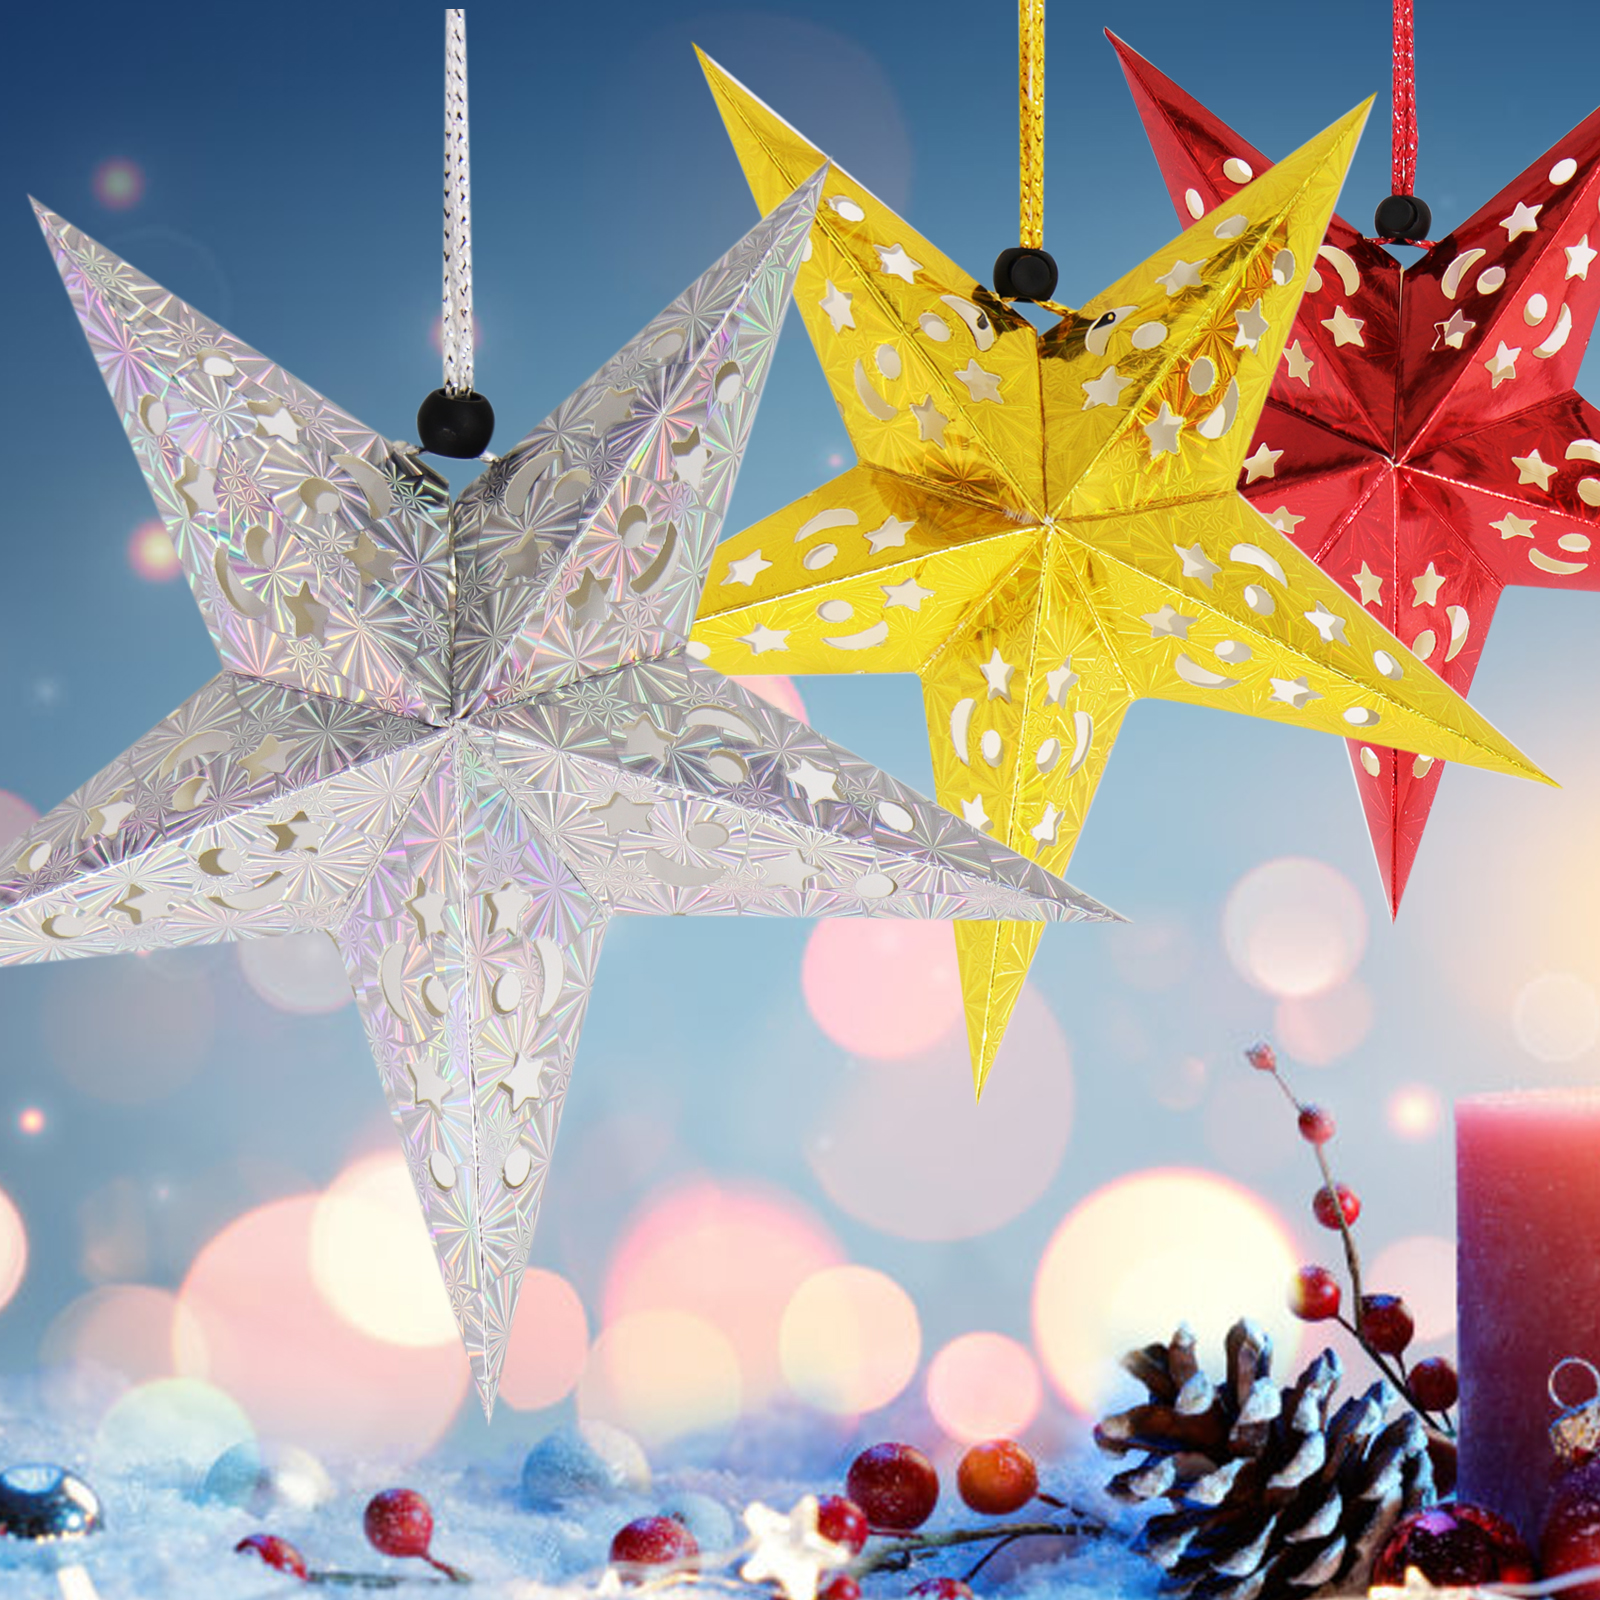 1pc 30cm Hanging Paper Star Festival Lampshade Paper Lantern Wedding Birthday Party DIY Hanging Decorations Christmas Ornaments